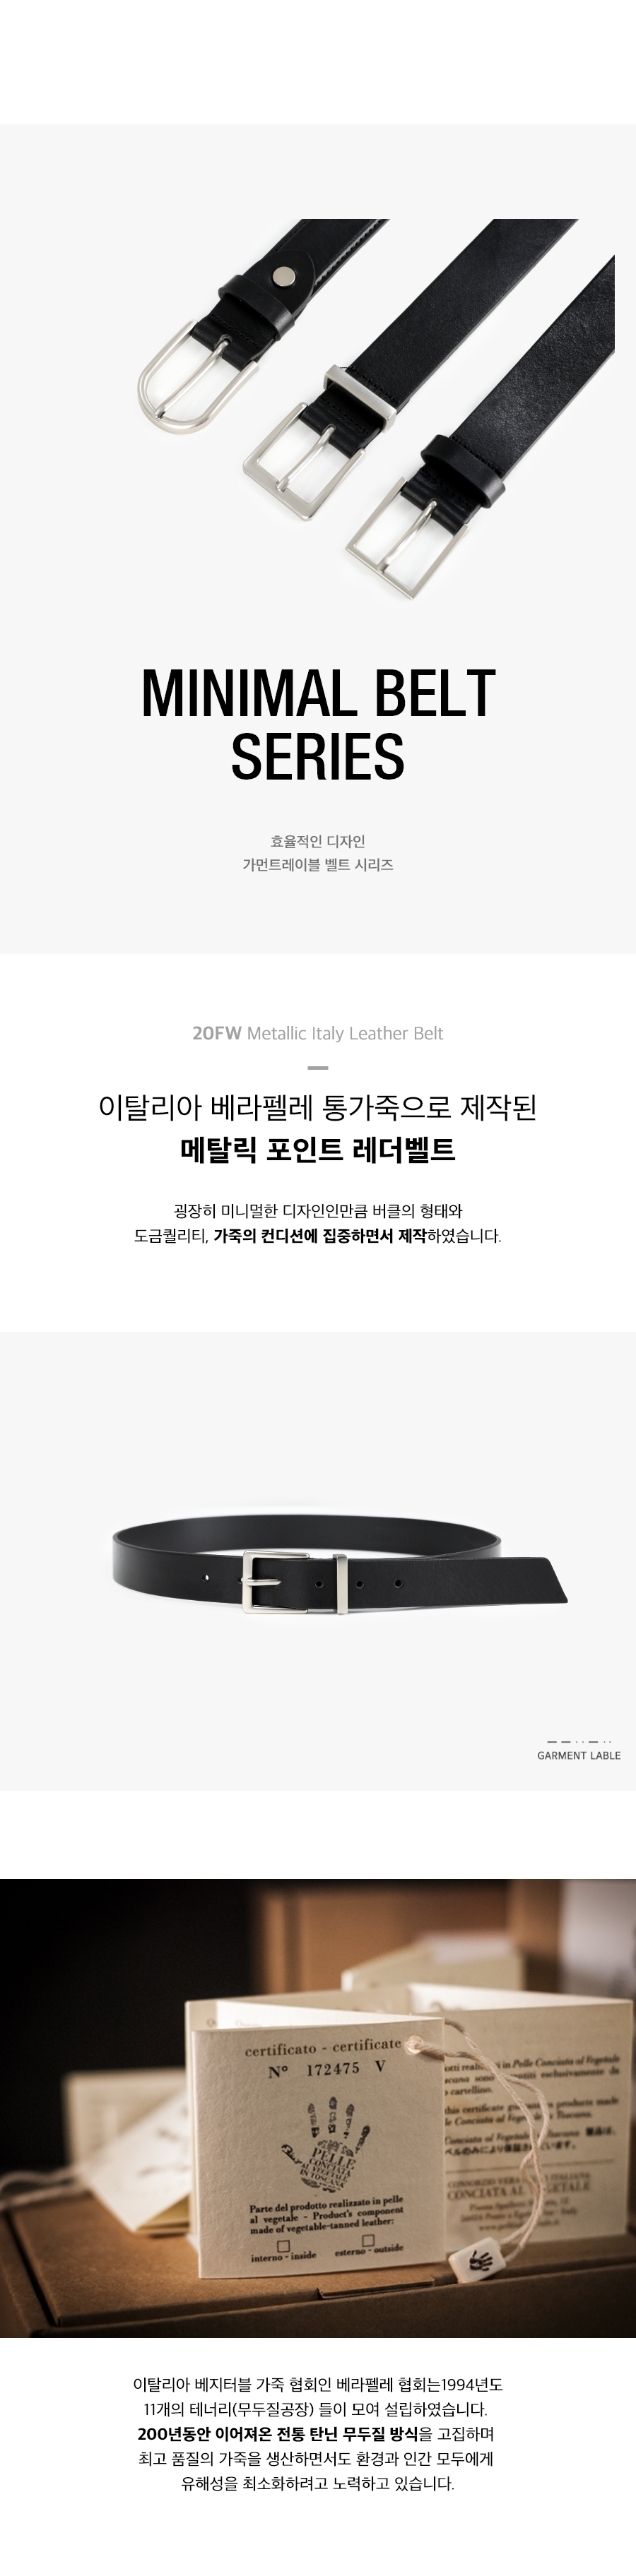 가먼트레이블(GARMENT LABLE) Metallic Italy Leather Belt